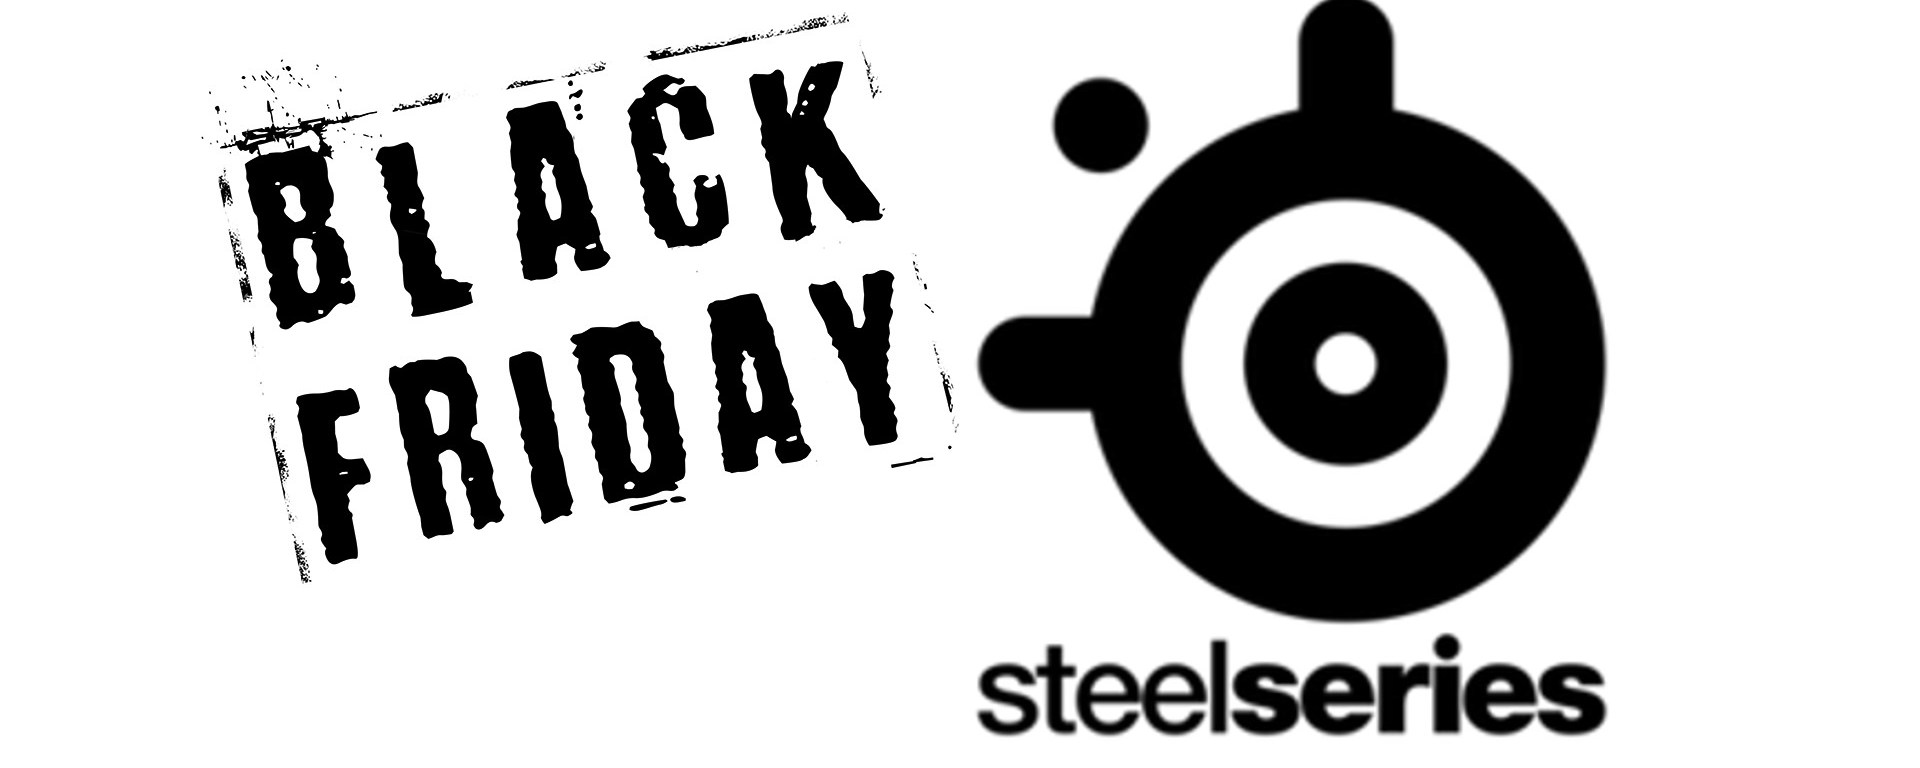 bf543f78f2d SteelSeries Black Friday 2018 Sale Coupons up to 50% OFF!